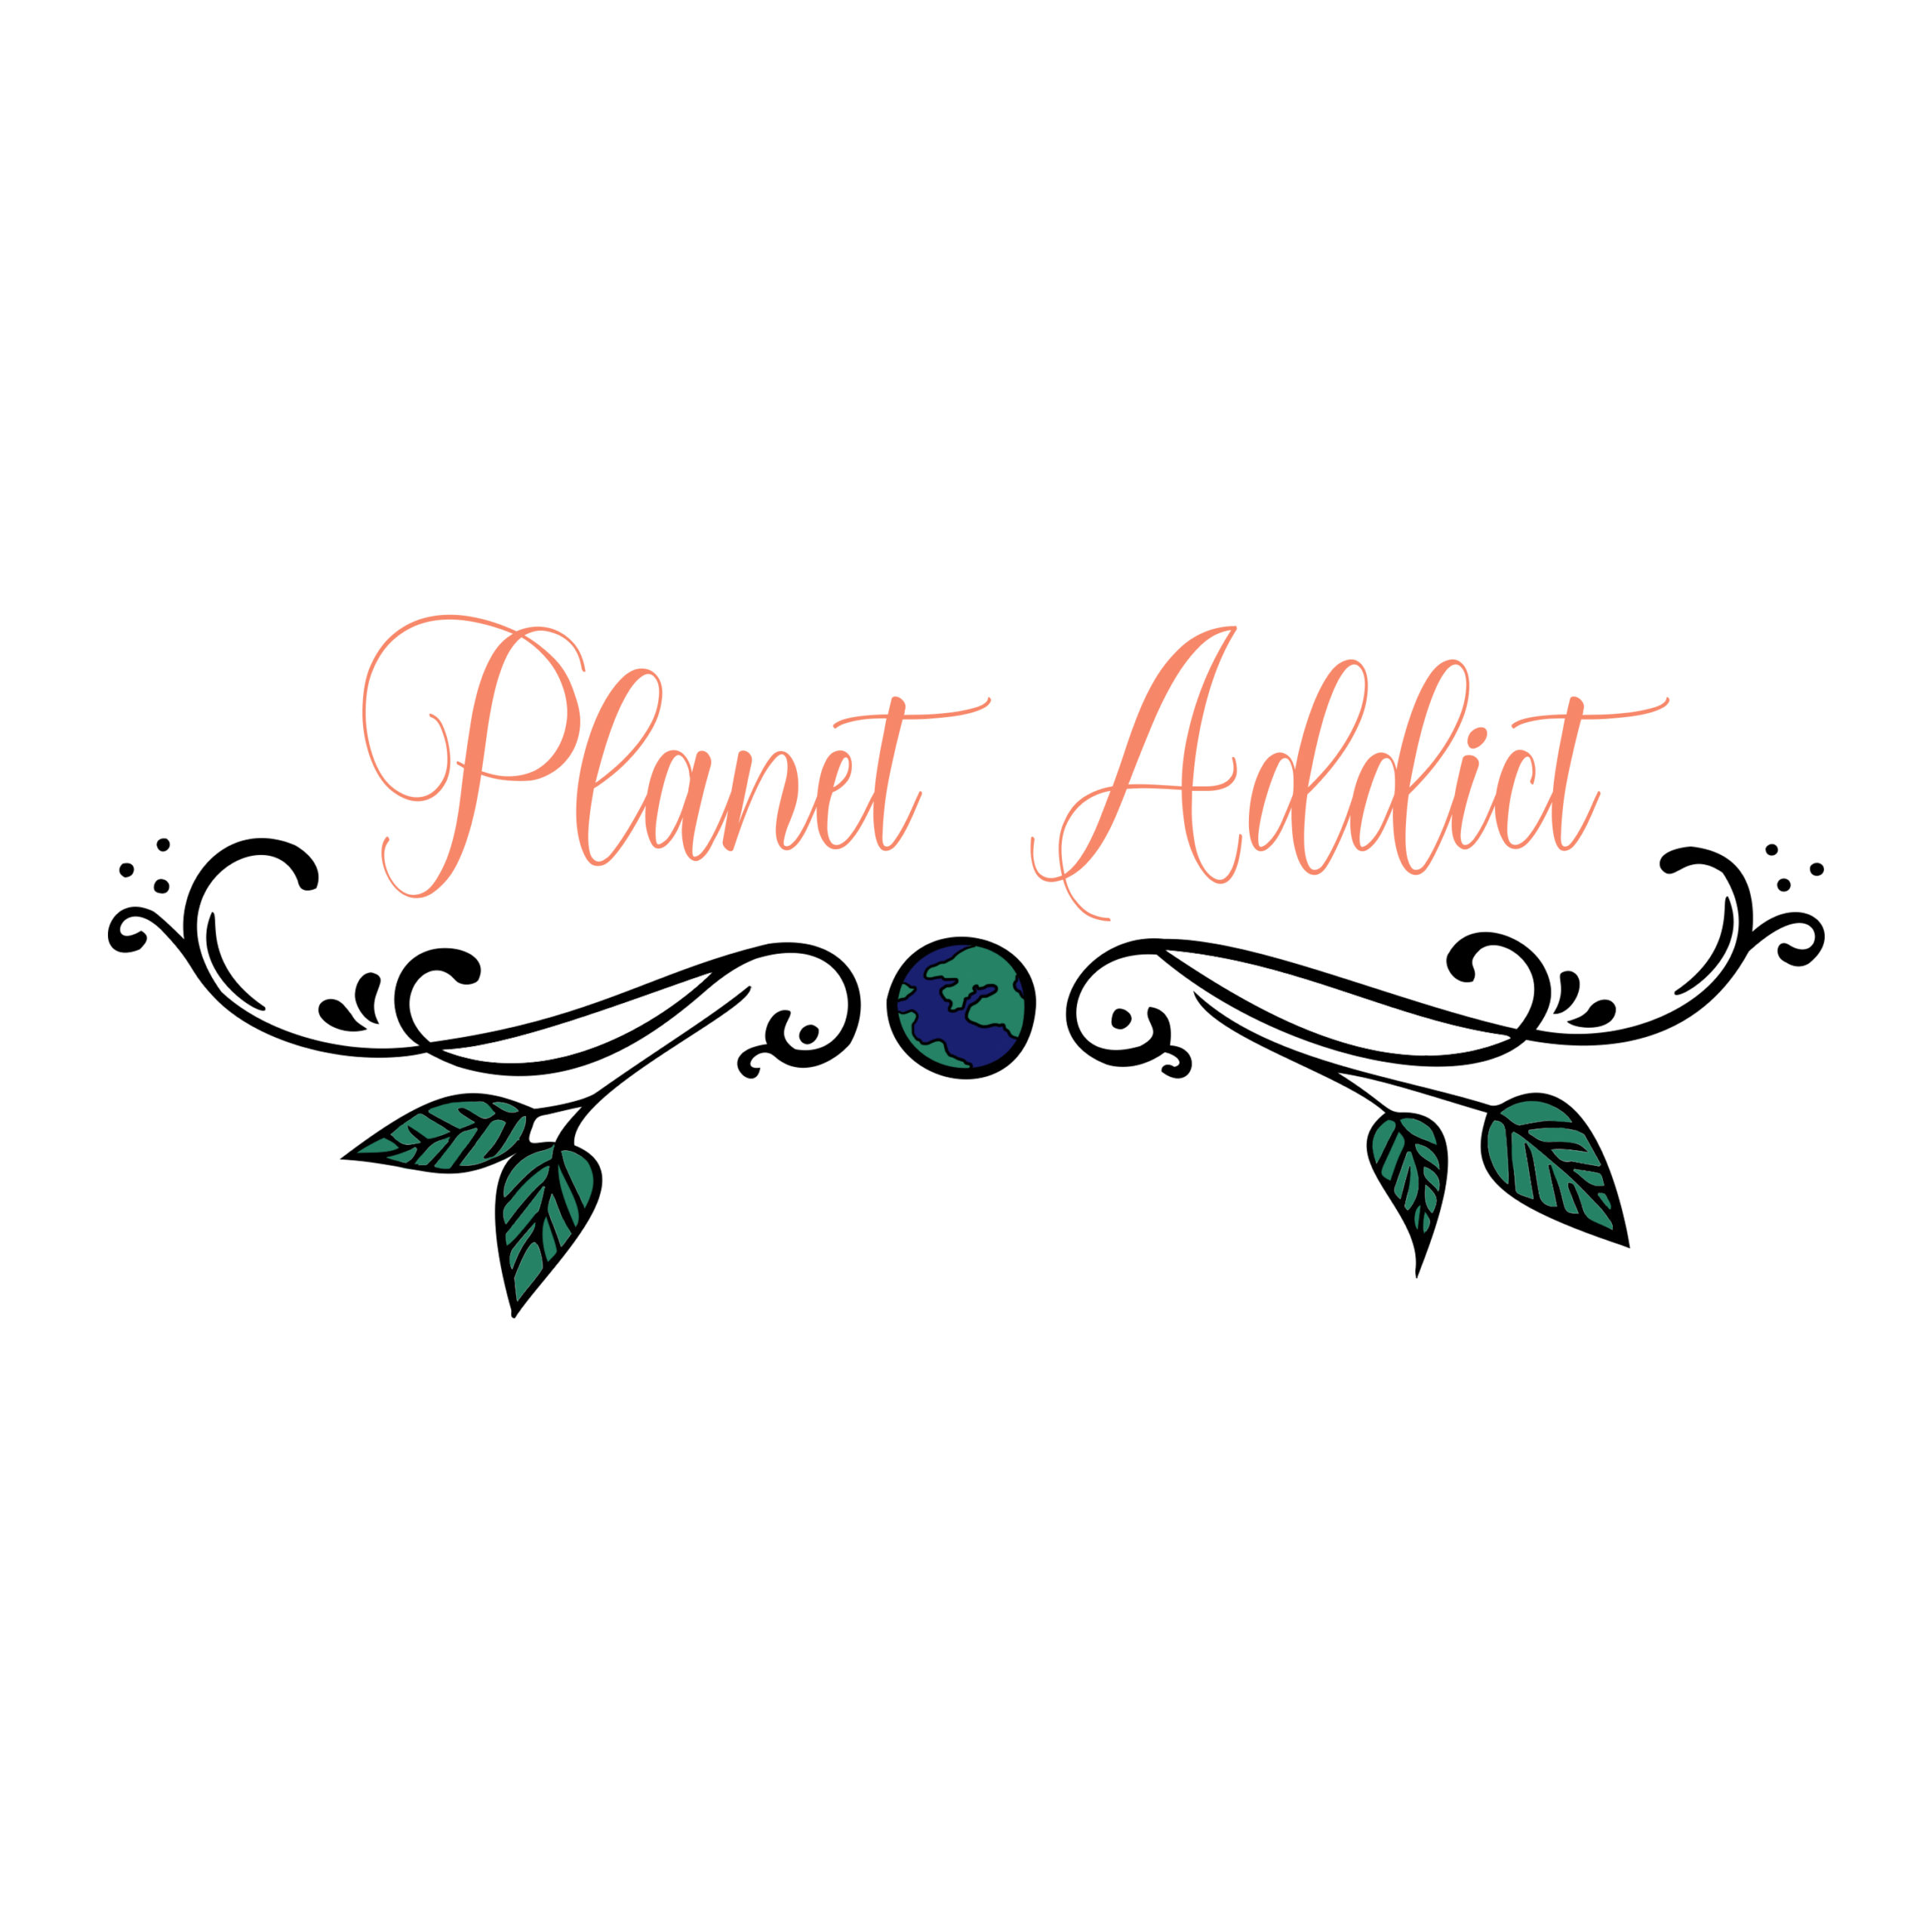 planet addict logo square_300dpi